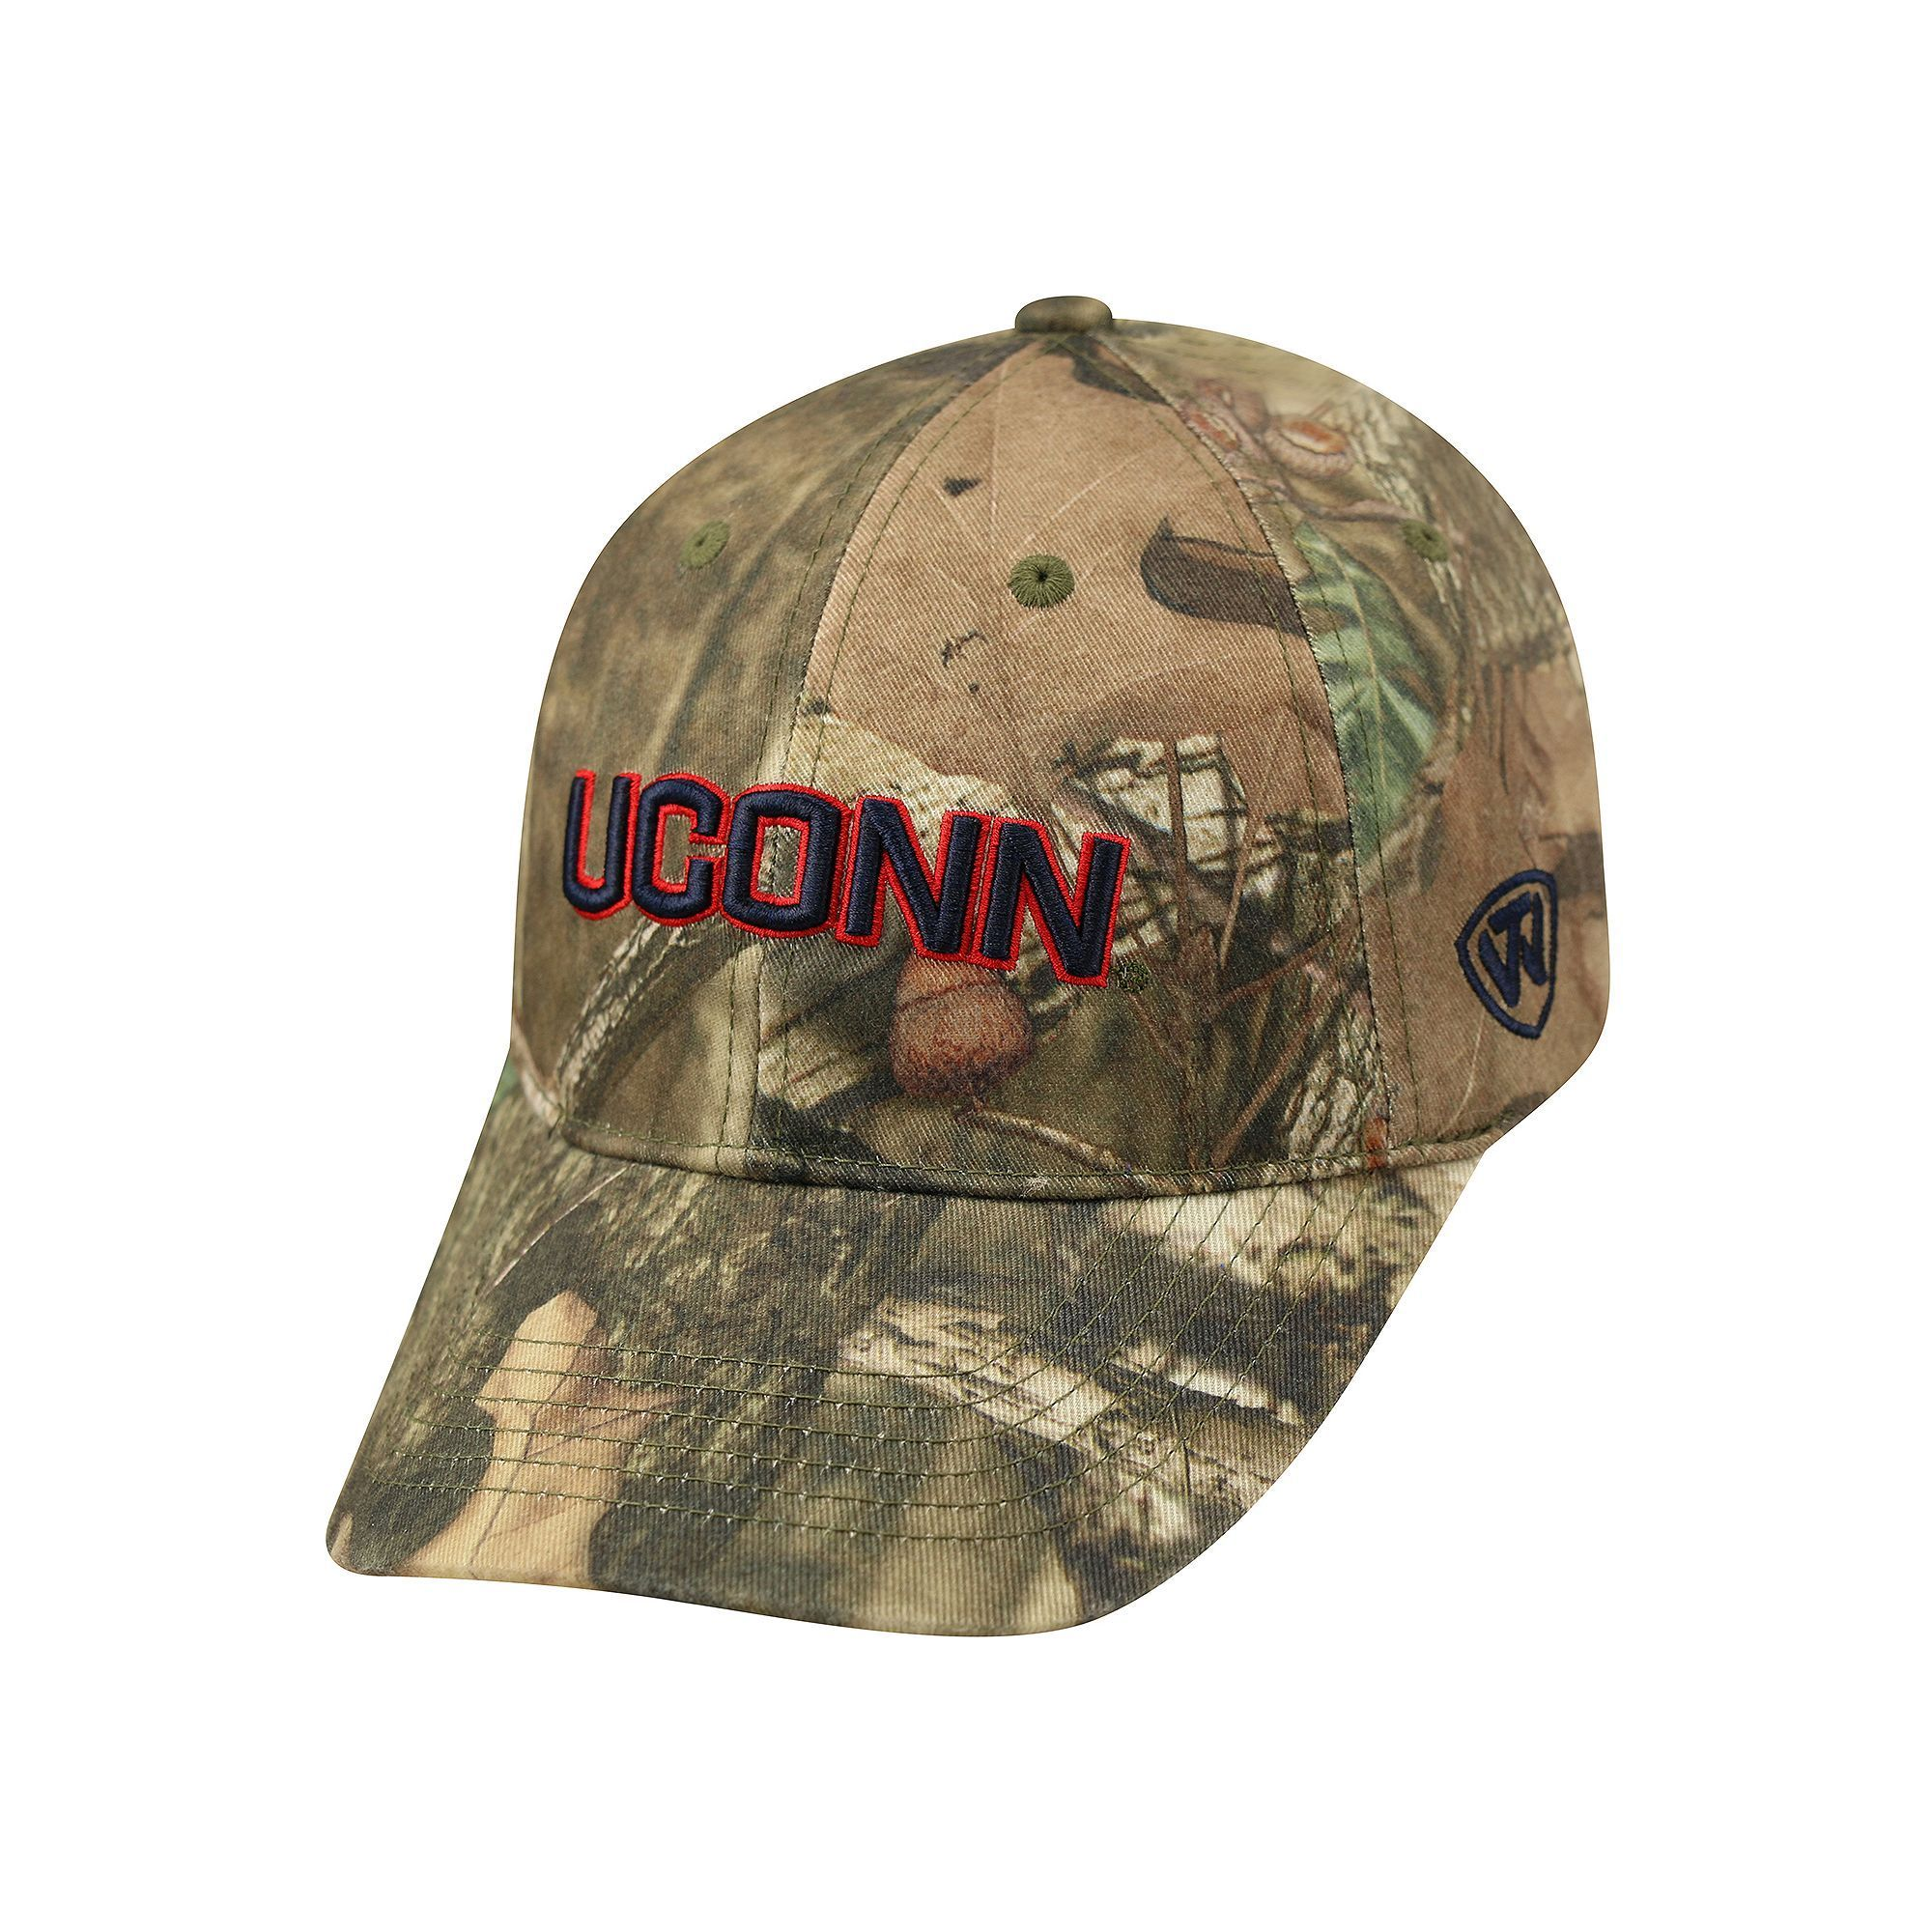 purchase cheap 411f4 cba7c Adult Top of the World UConn Huskies Resistance Mossy Oak Camouflage  Adjustable Cap, Green Oth